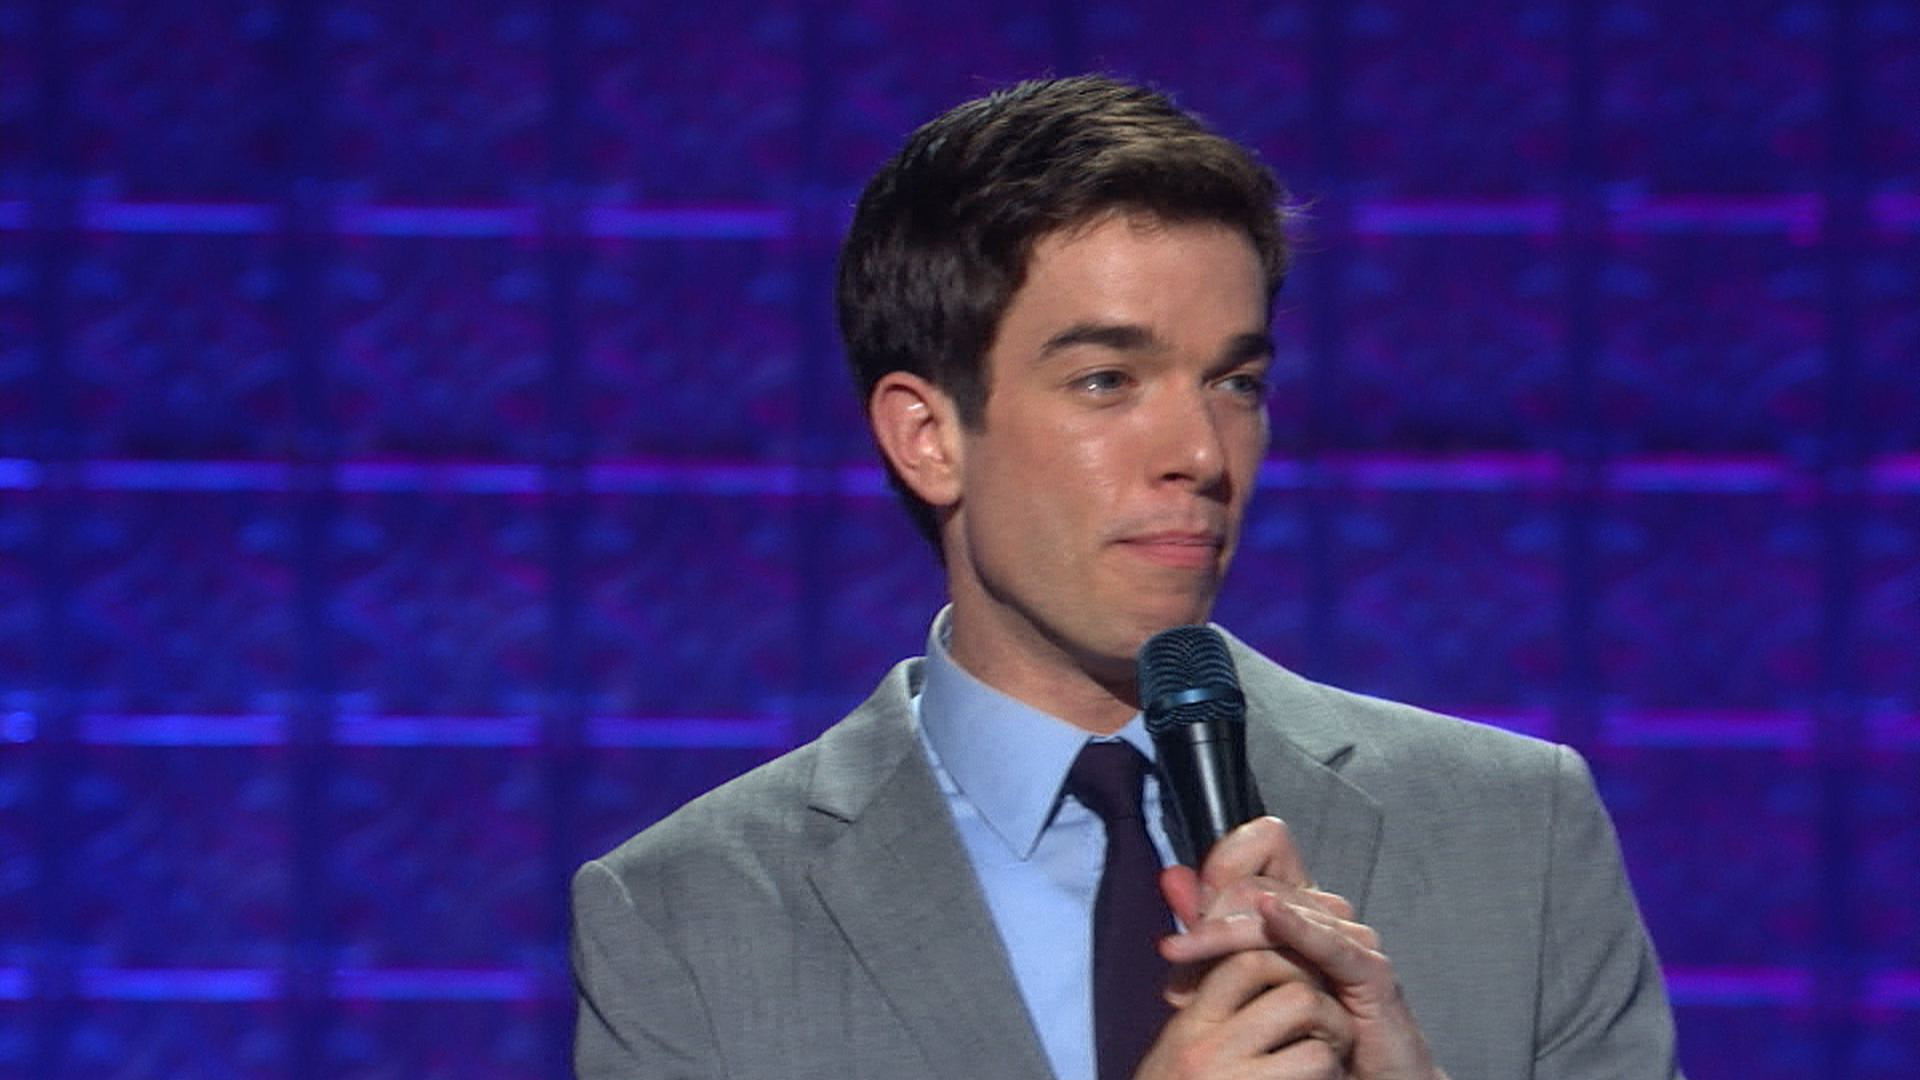 John Mulaney - Get the Paddy Wagon